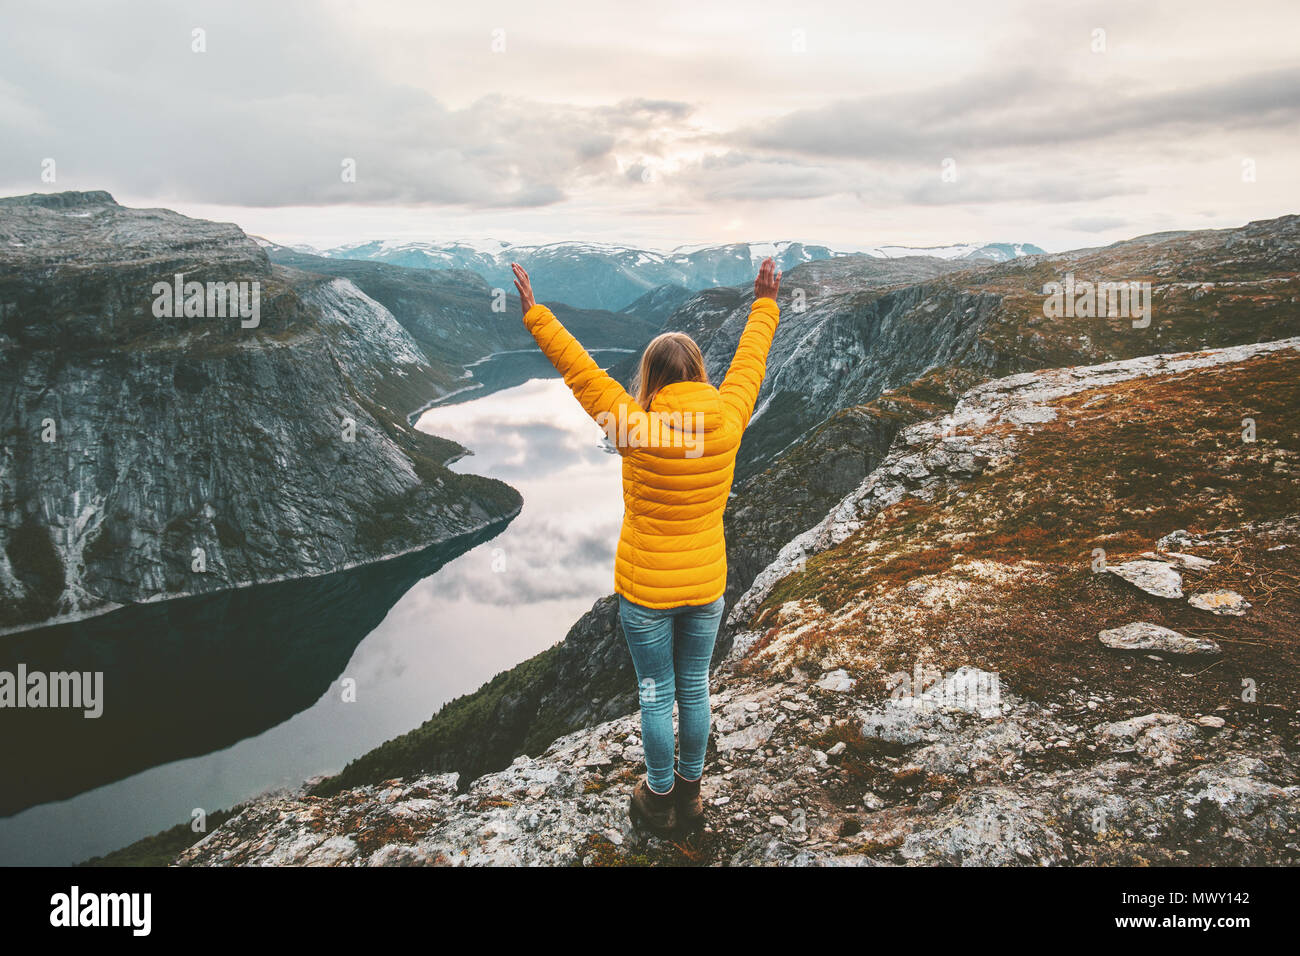 Happy woman raised hands on mountain summit traveling alone adventure lifestyle journey vacations aerial lake landscape success wellness emotions - Stock Image